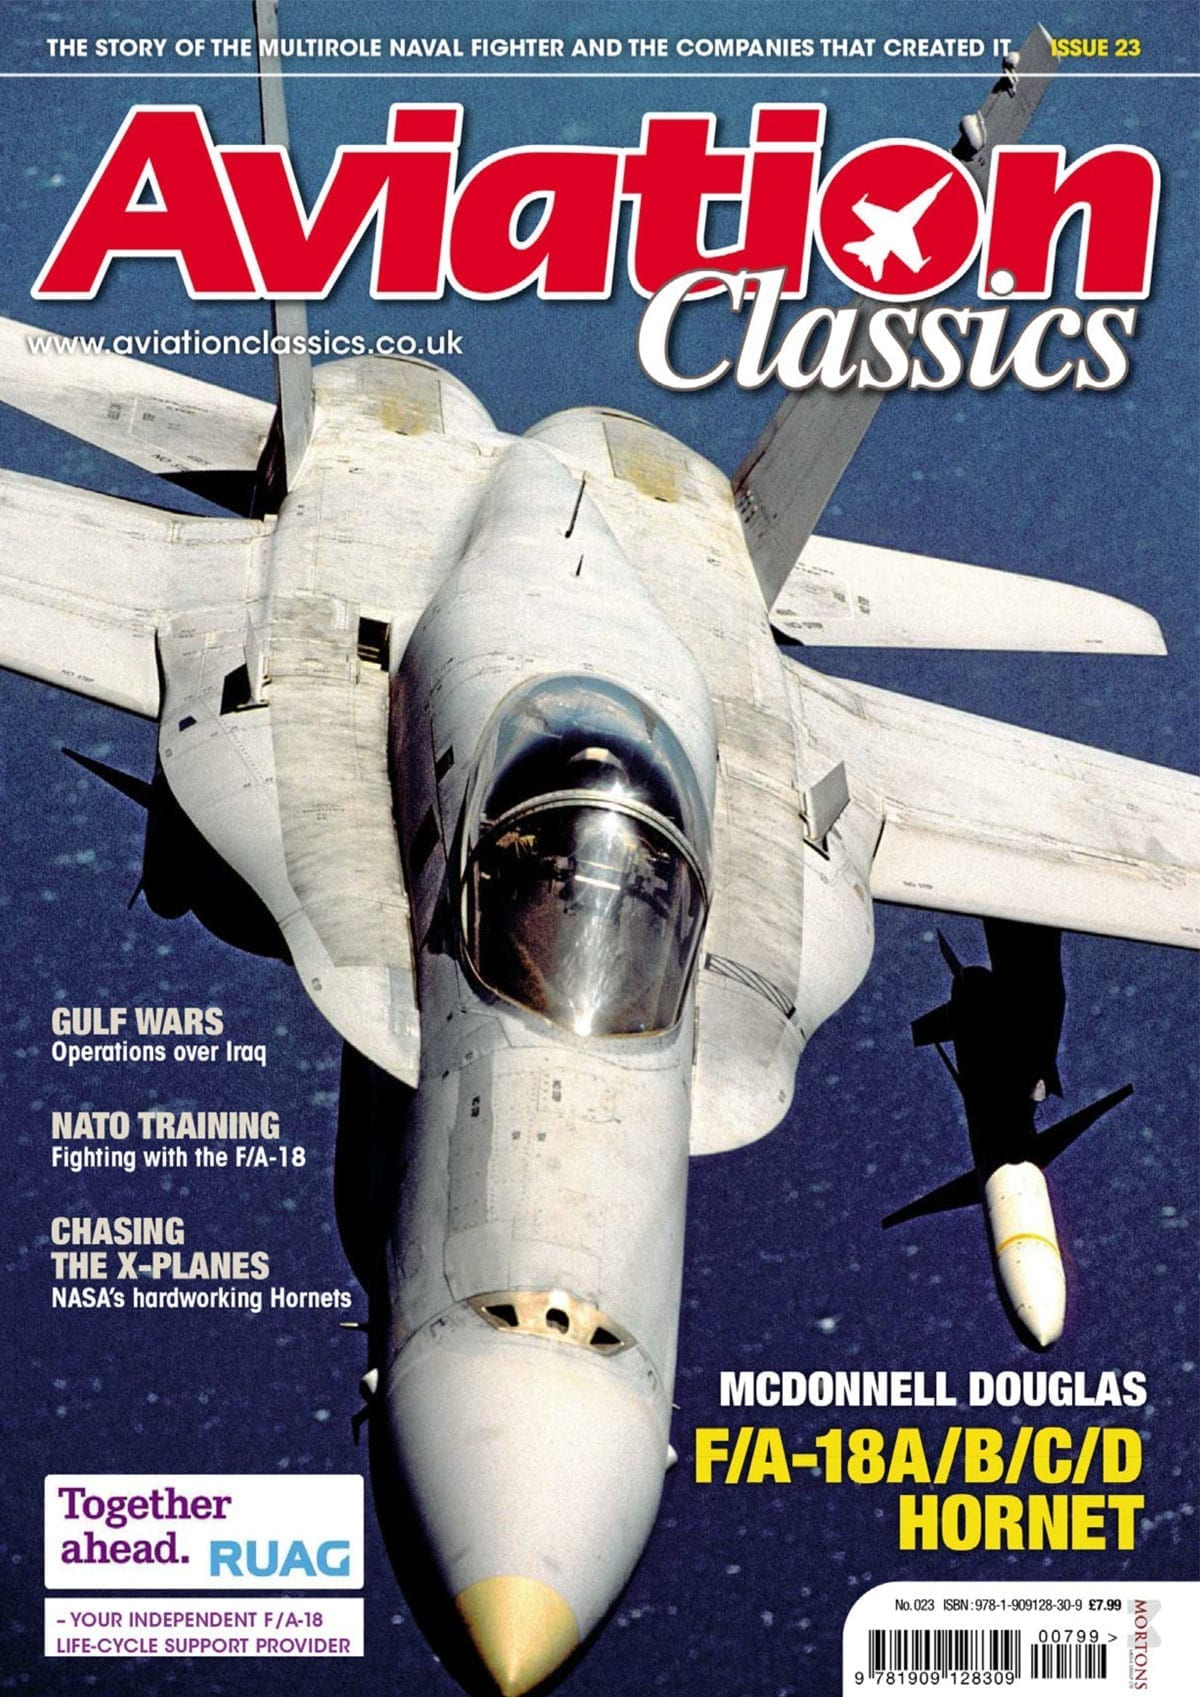 Aviation Classics - F/A-18A/B/C/D Hornet